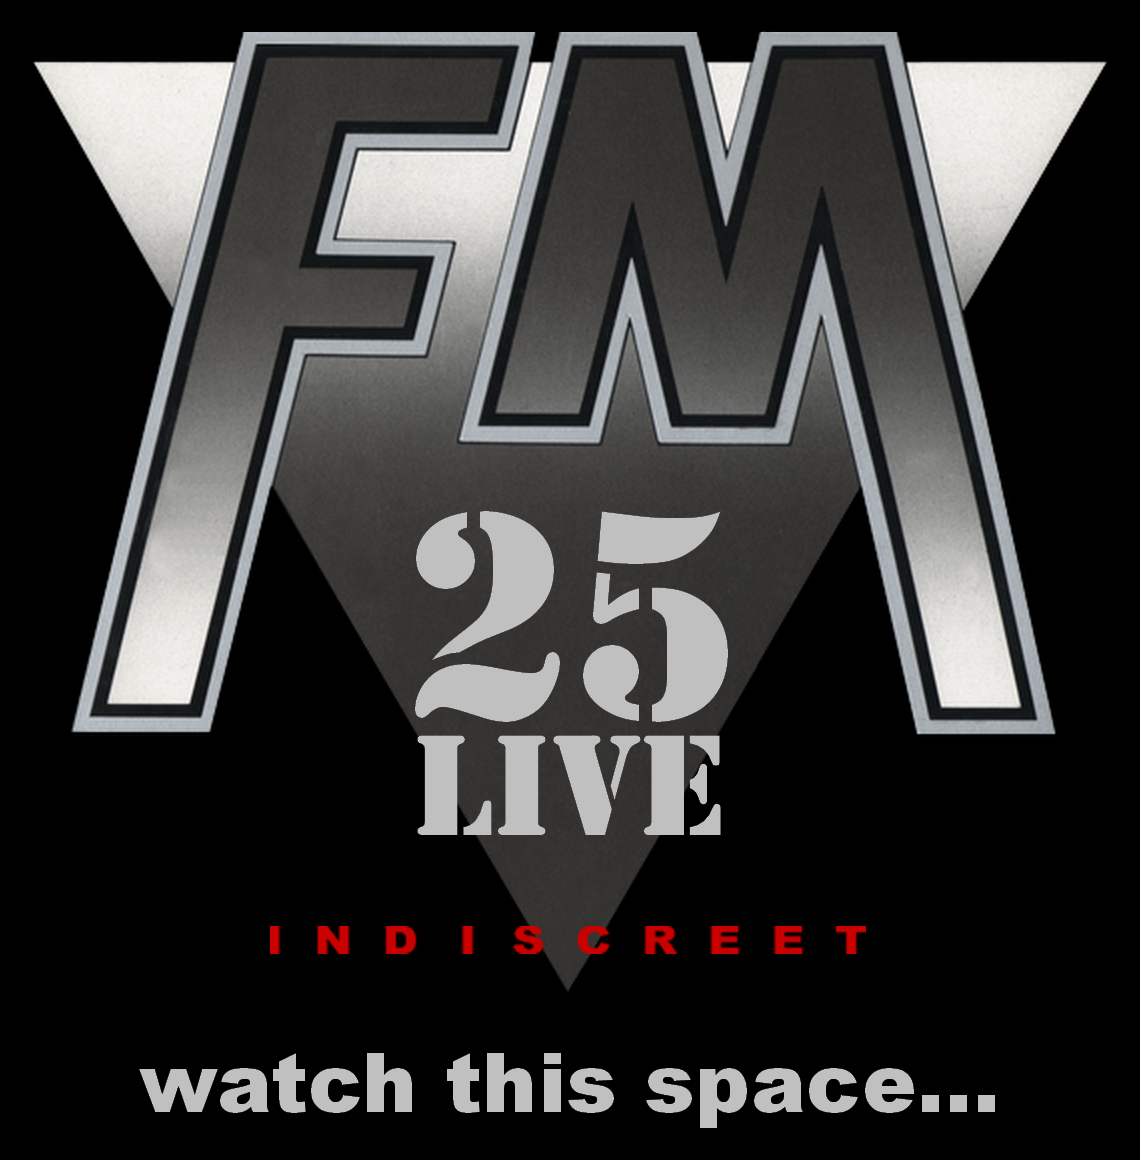 FM - Indiscreet 25 Live - Watch This Space